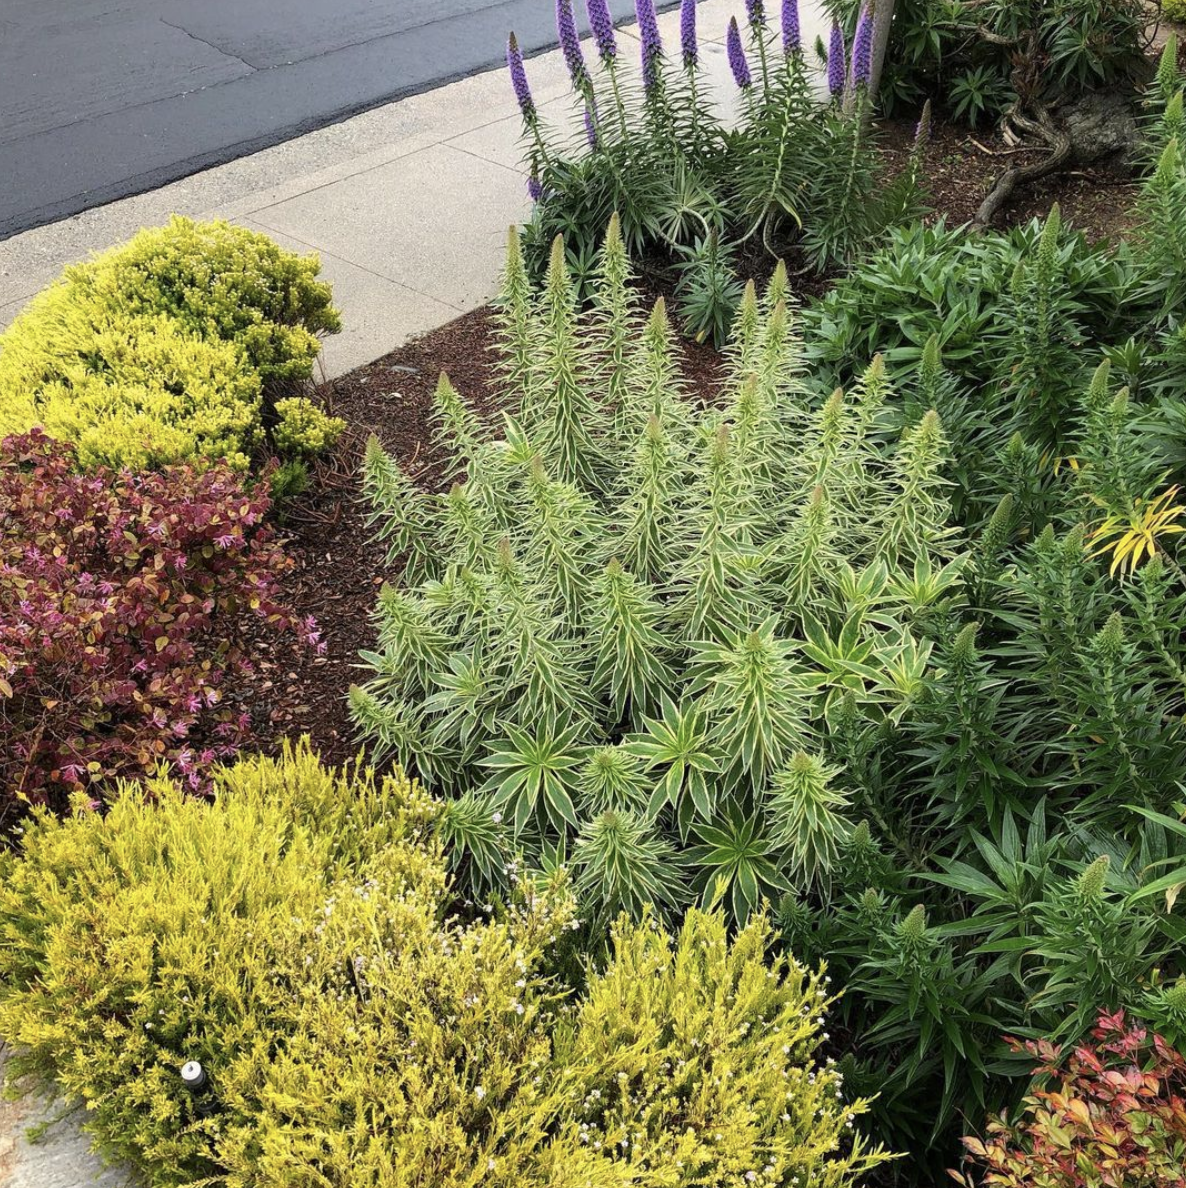 Grouping plants that have similar needs